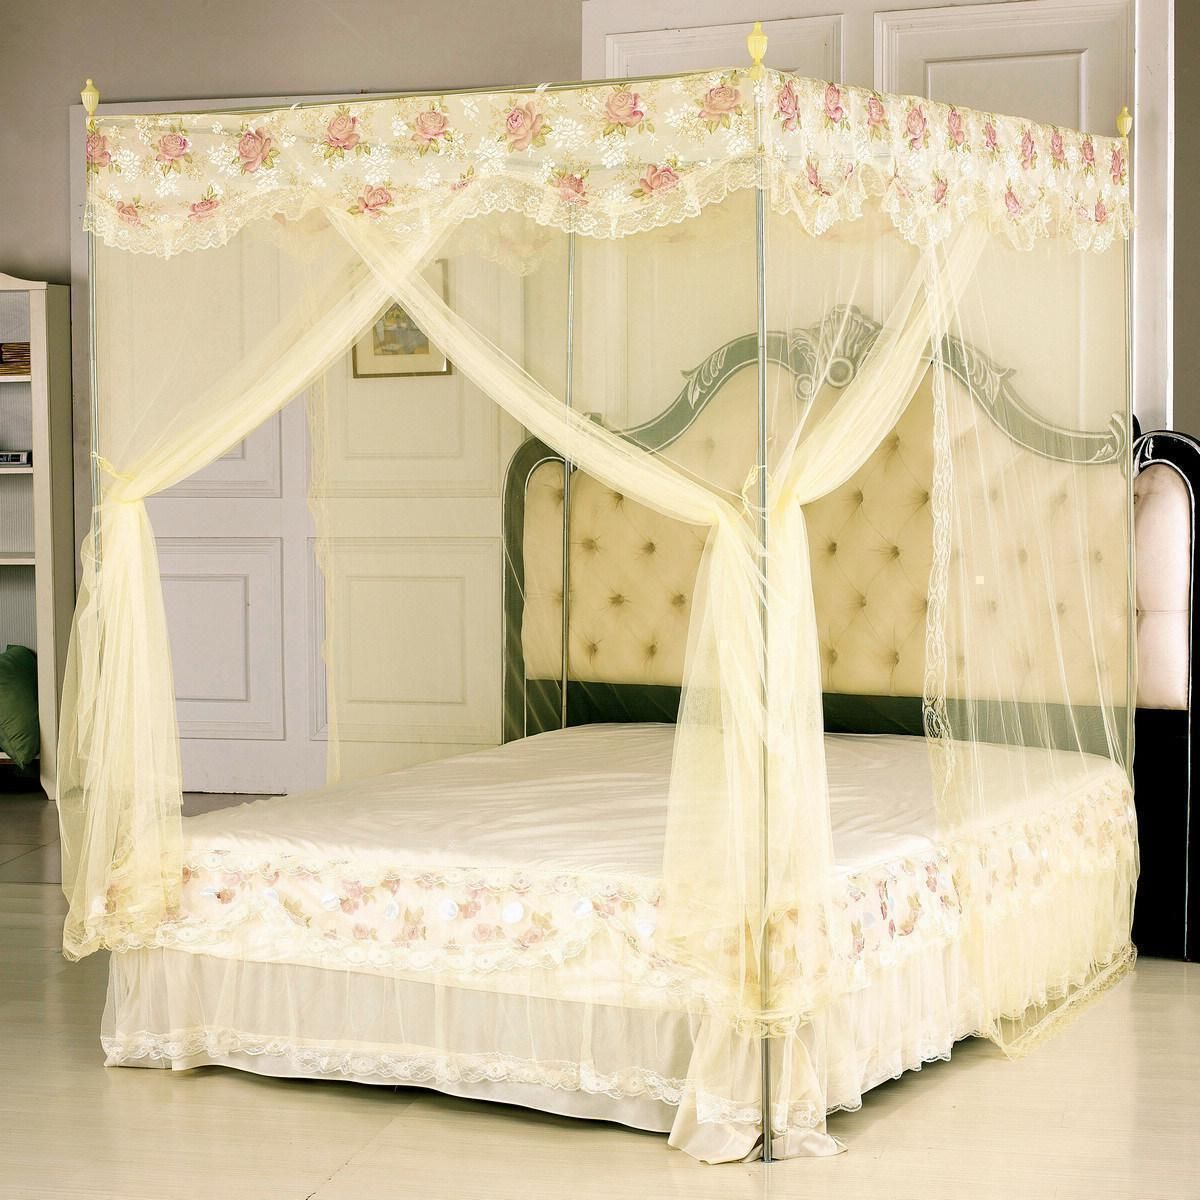 Modern Style Small Canopy Bed Design with White Wall Paint Color and ...